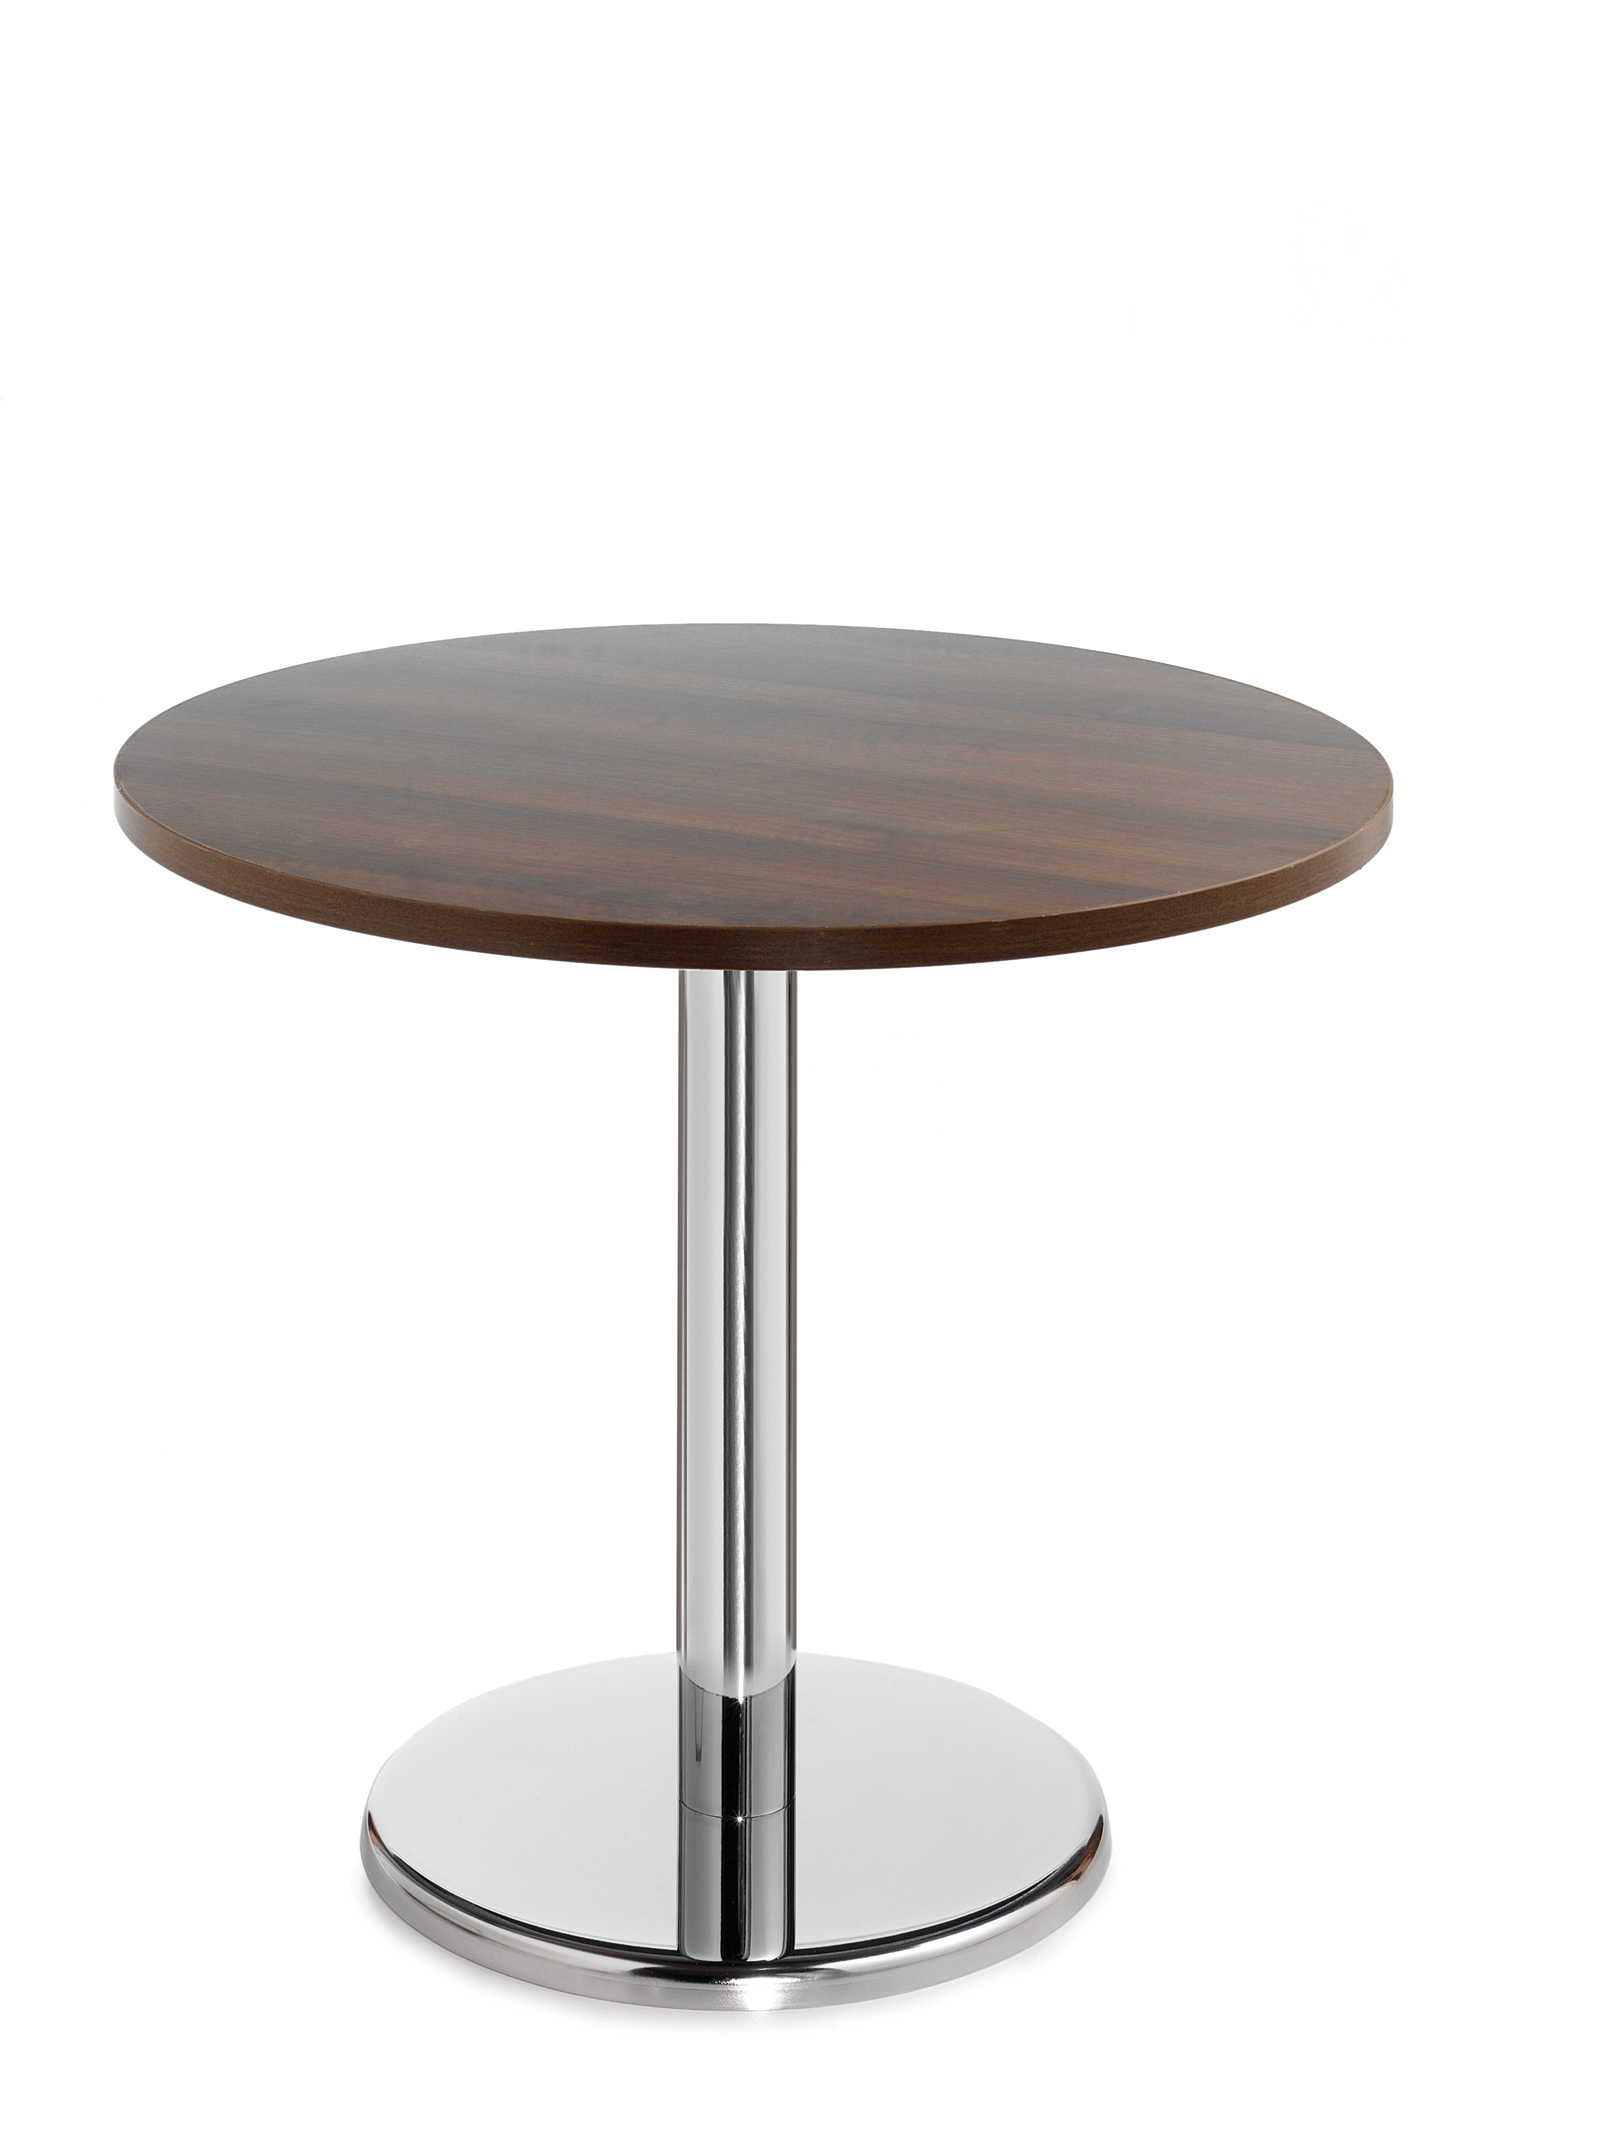 Pisa circular table with round chrome base 800mm - walnut